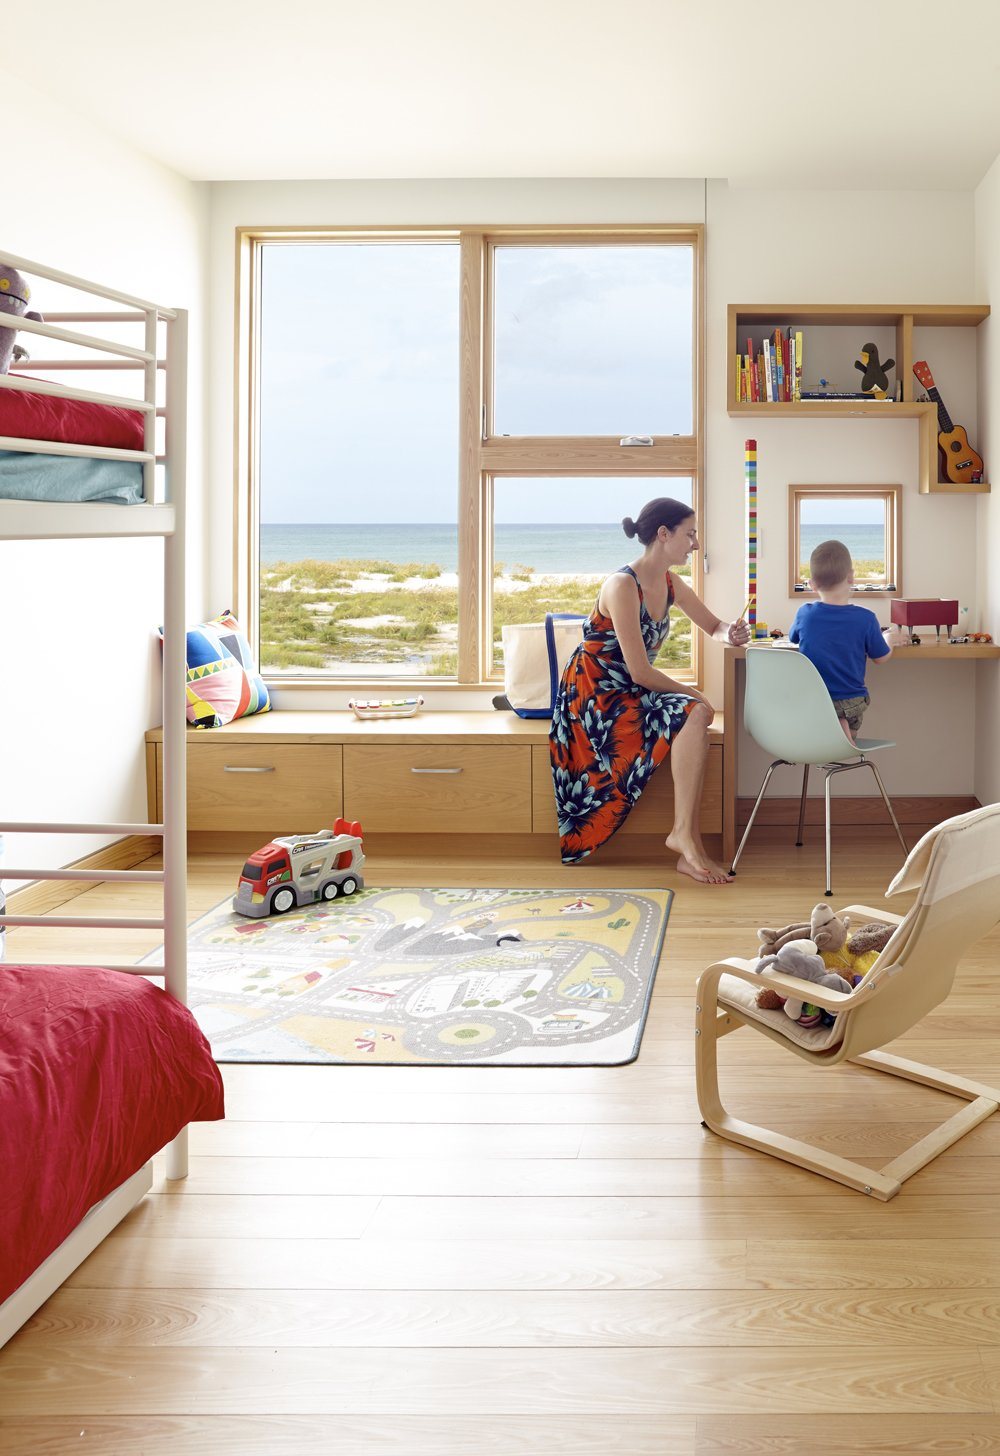 The kids' bedroom sports an Ikea bunk bed and trundle, which leaves plenty of space for toys. Custom cypress built-ins provide multi-functional storage and seating areas and minimize the need for furniture.  Photo 7 of 10 in Angular Modern Beach House in Florida